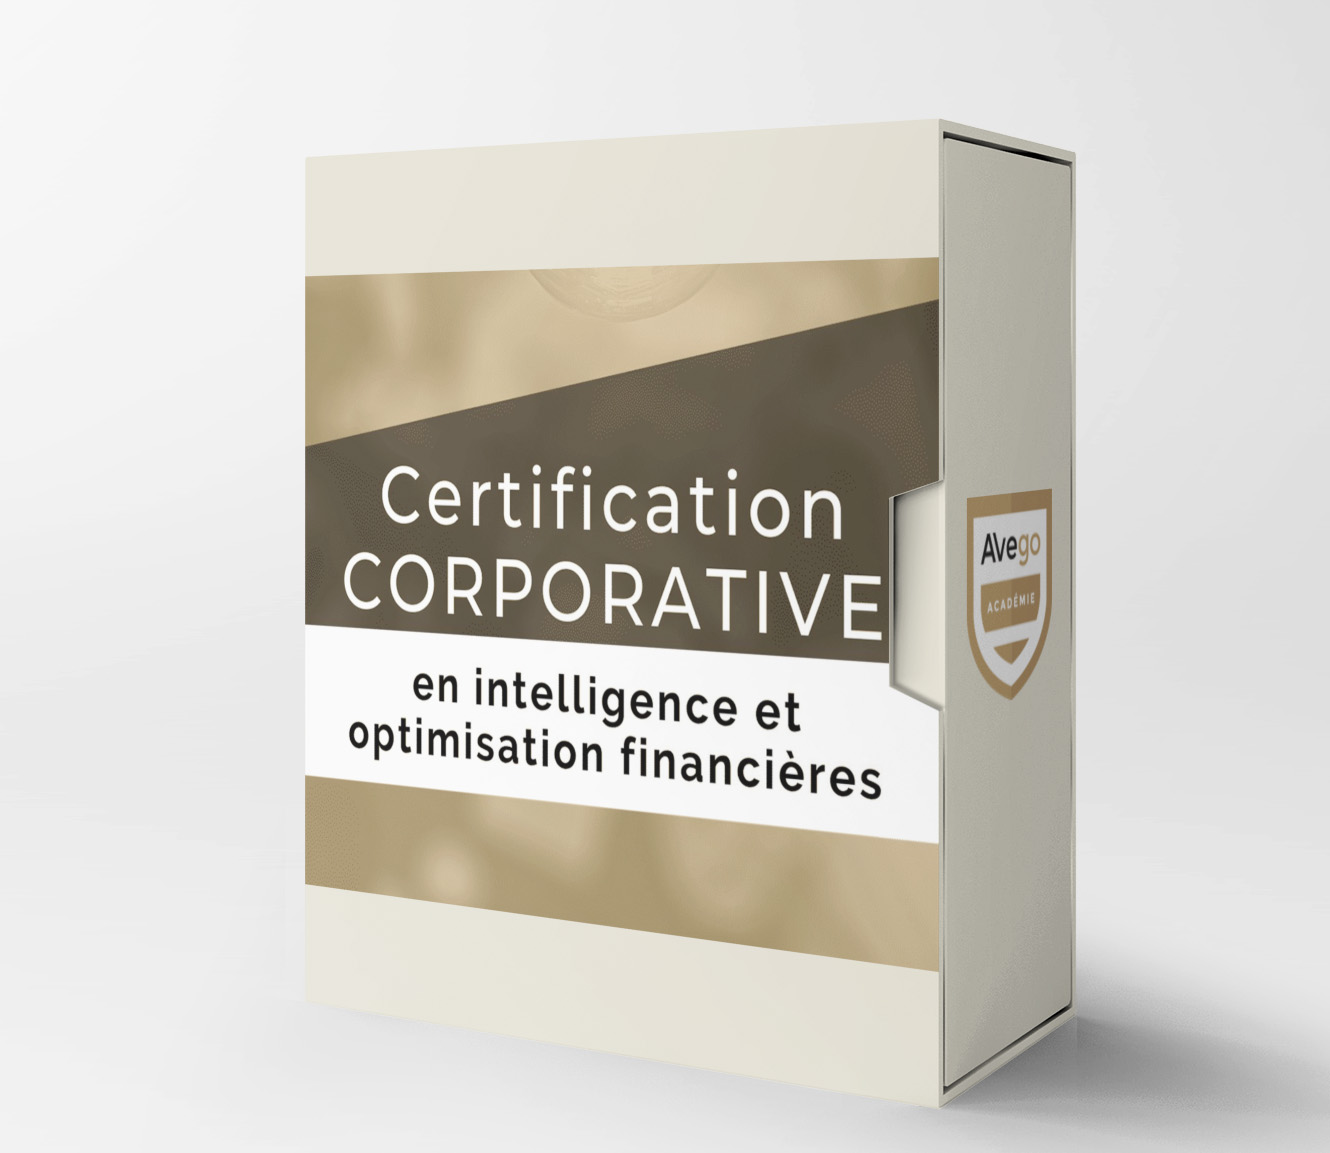 Certification corporative optimisation financieres